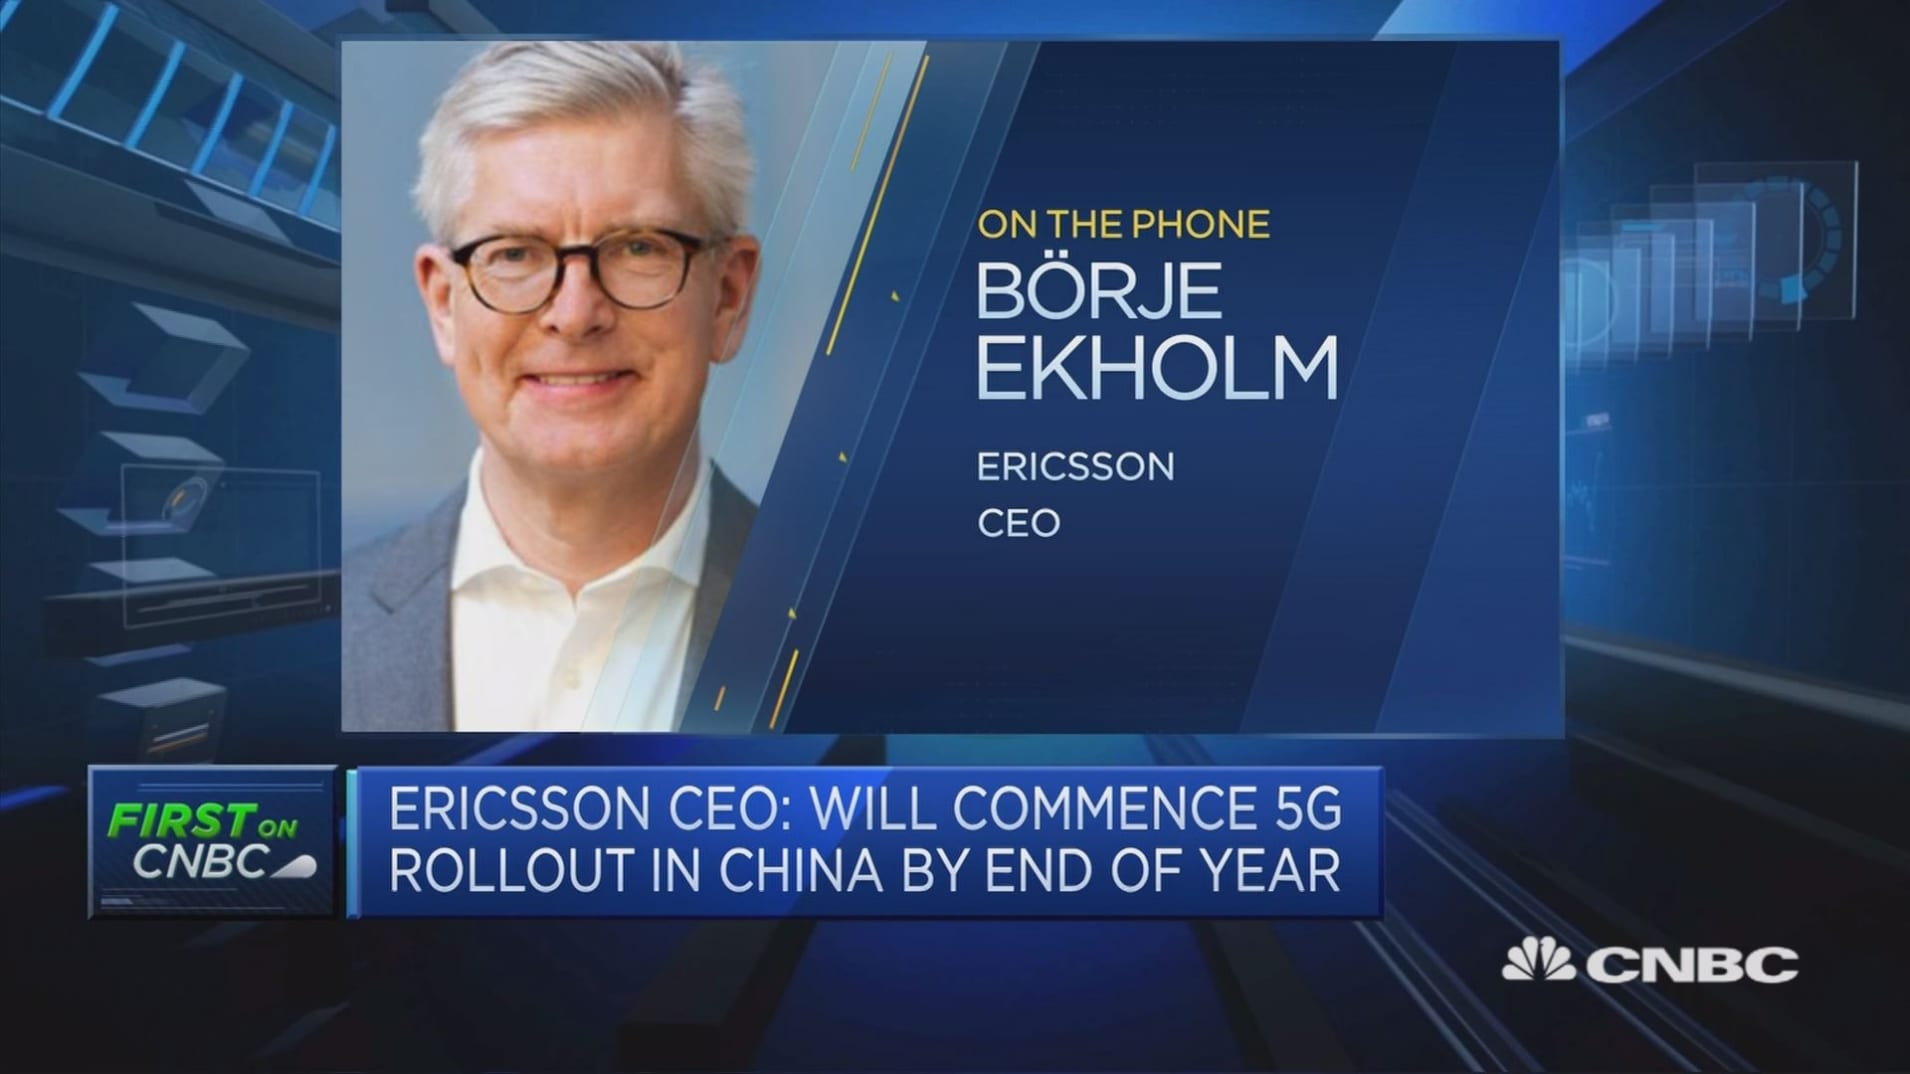 European 5G regulation needs to be more accommodative, Ericsson CEO says